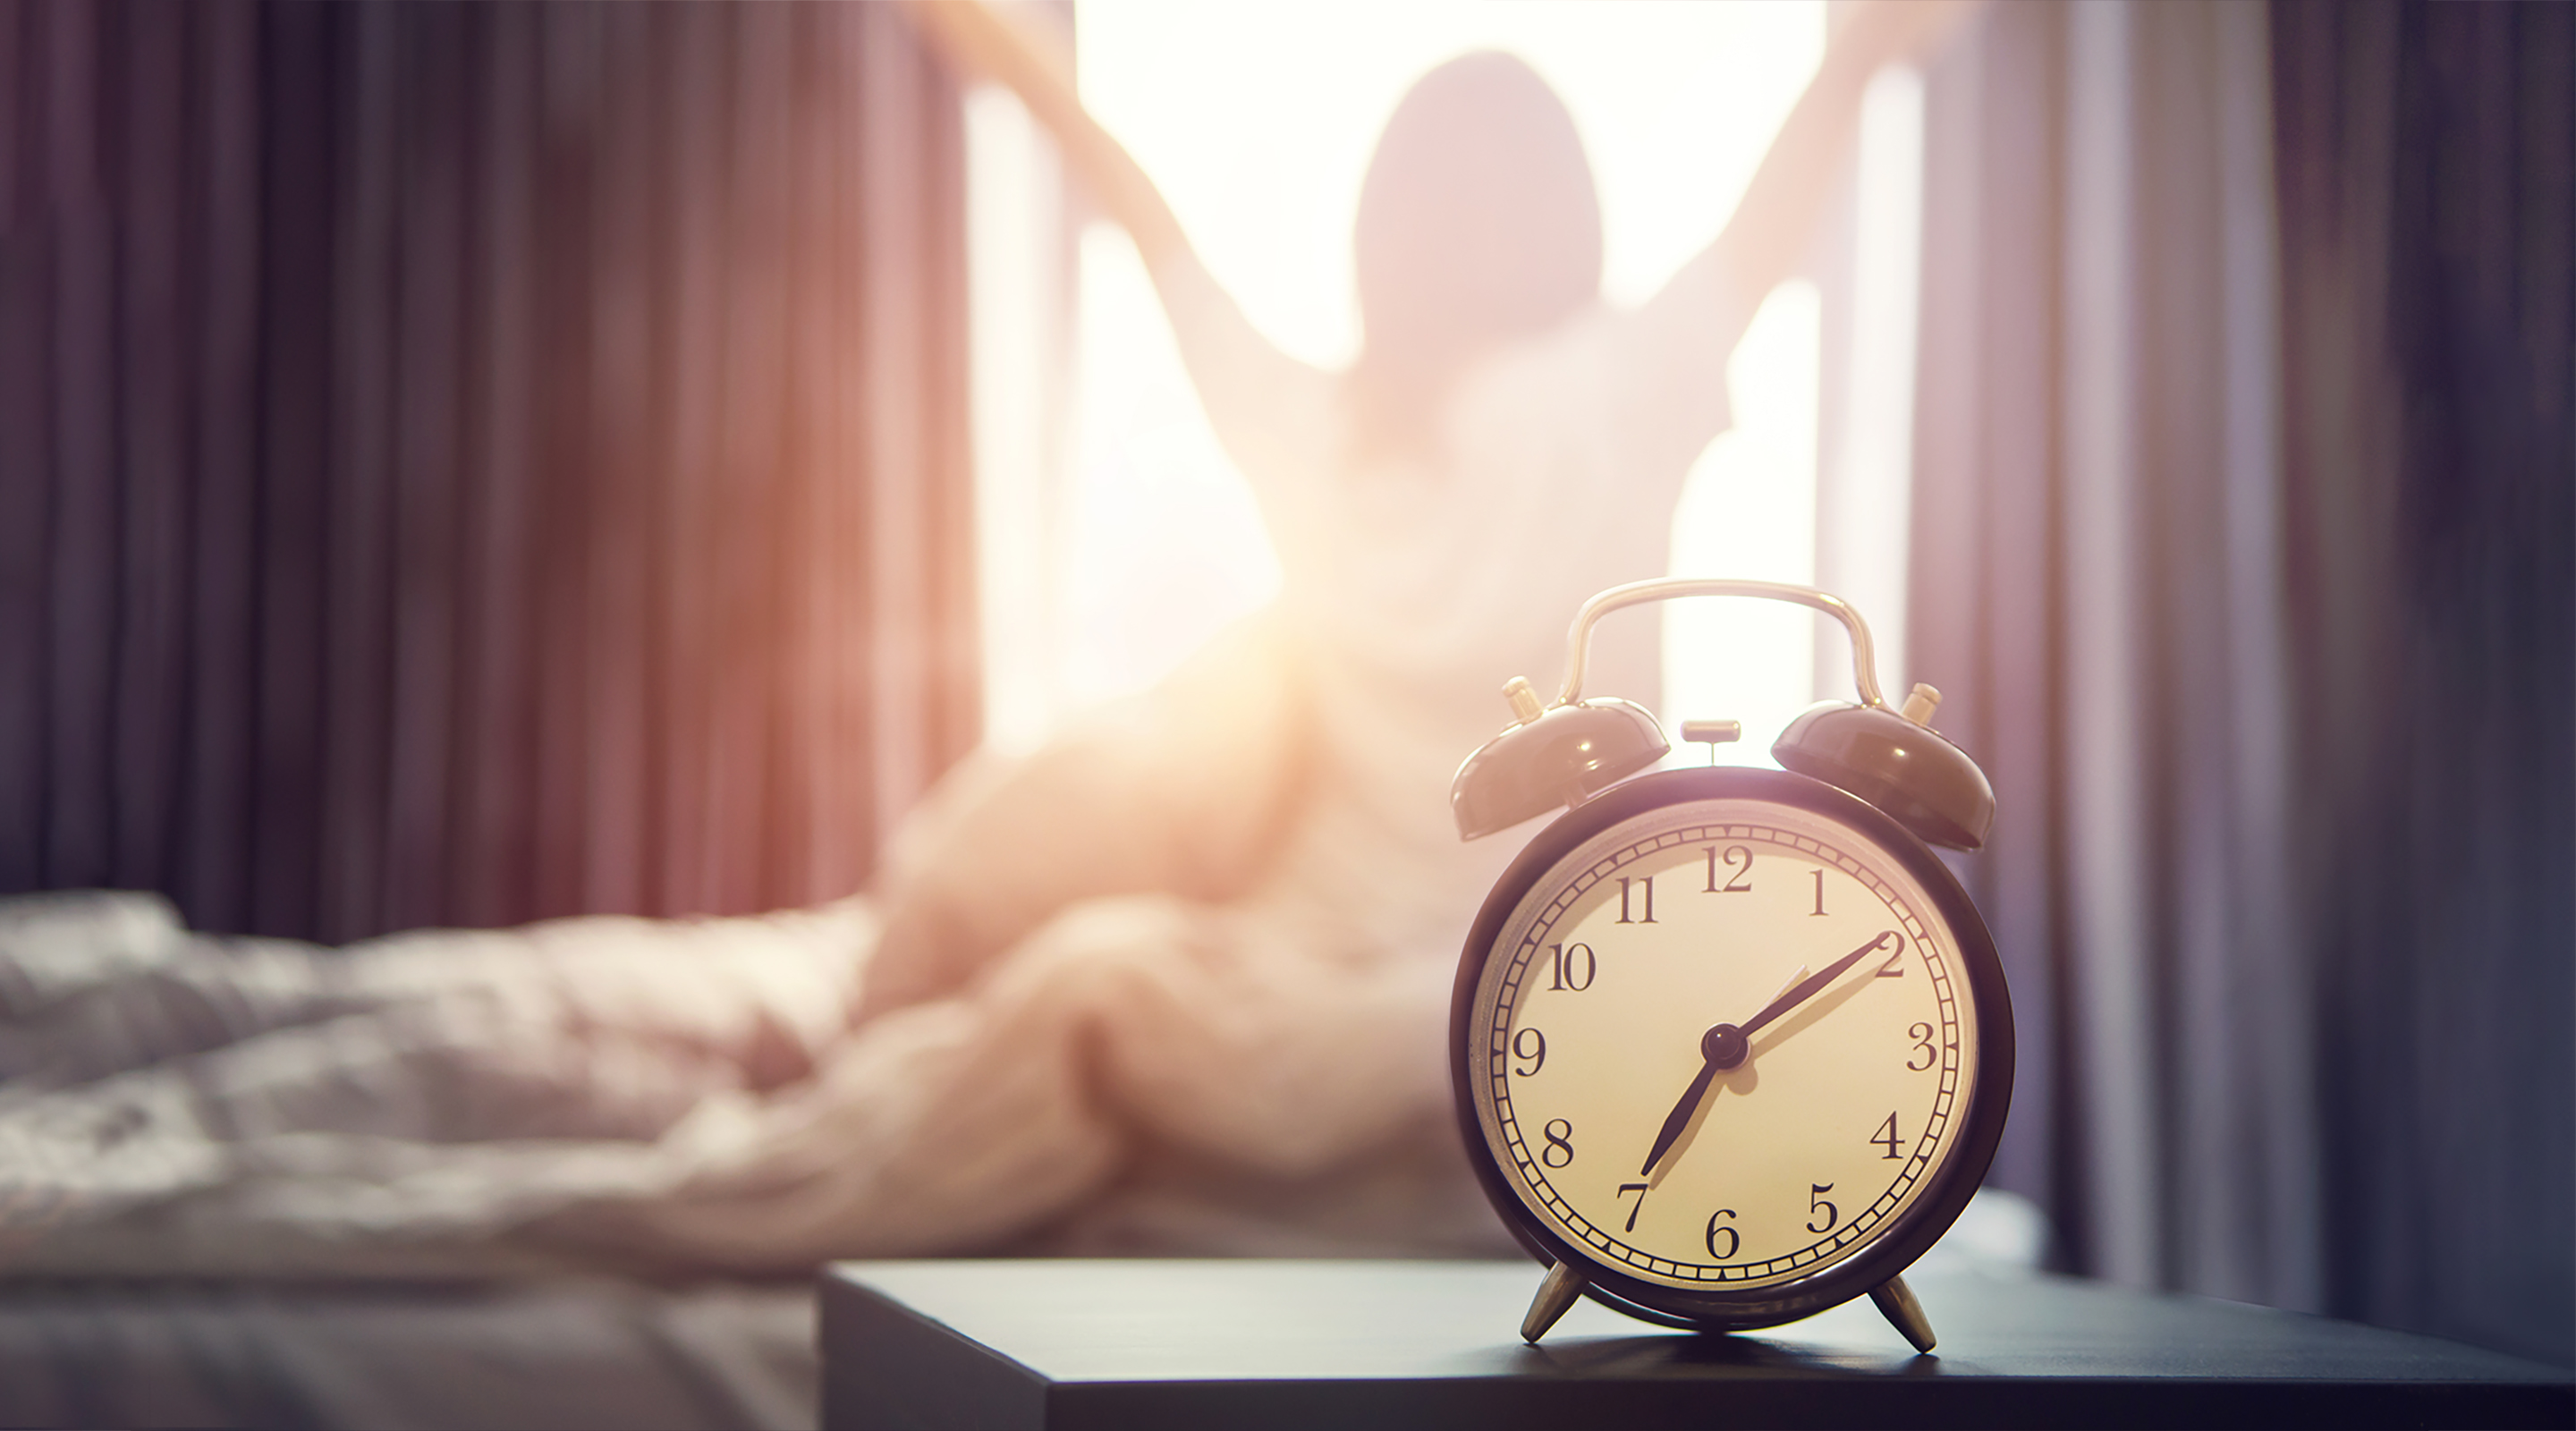 Close up of alarm clock in a bedroom with woman waking up in the background